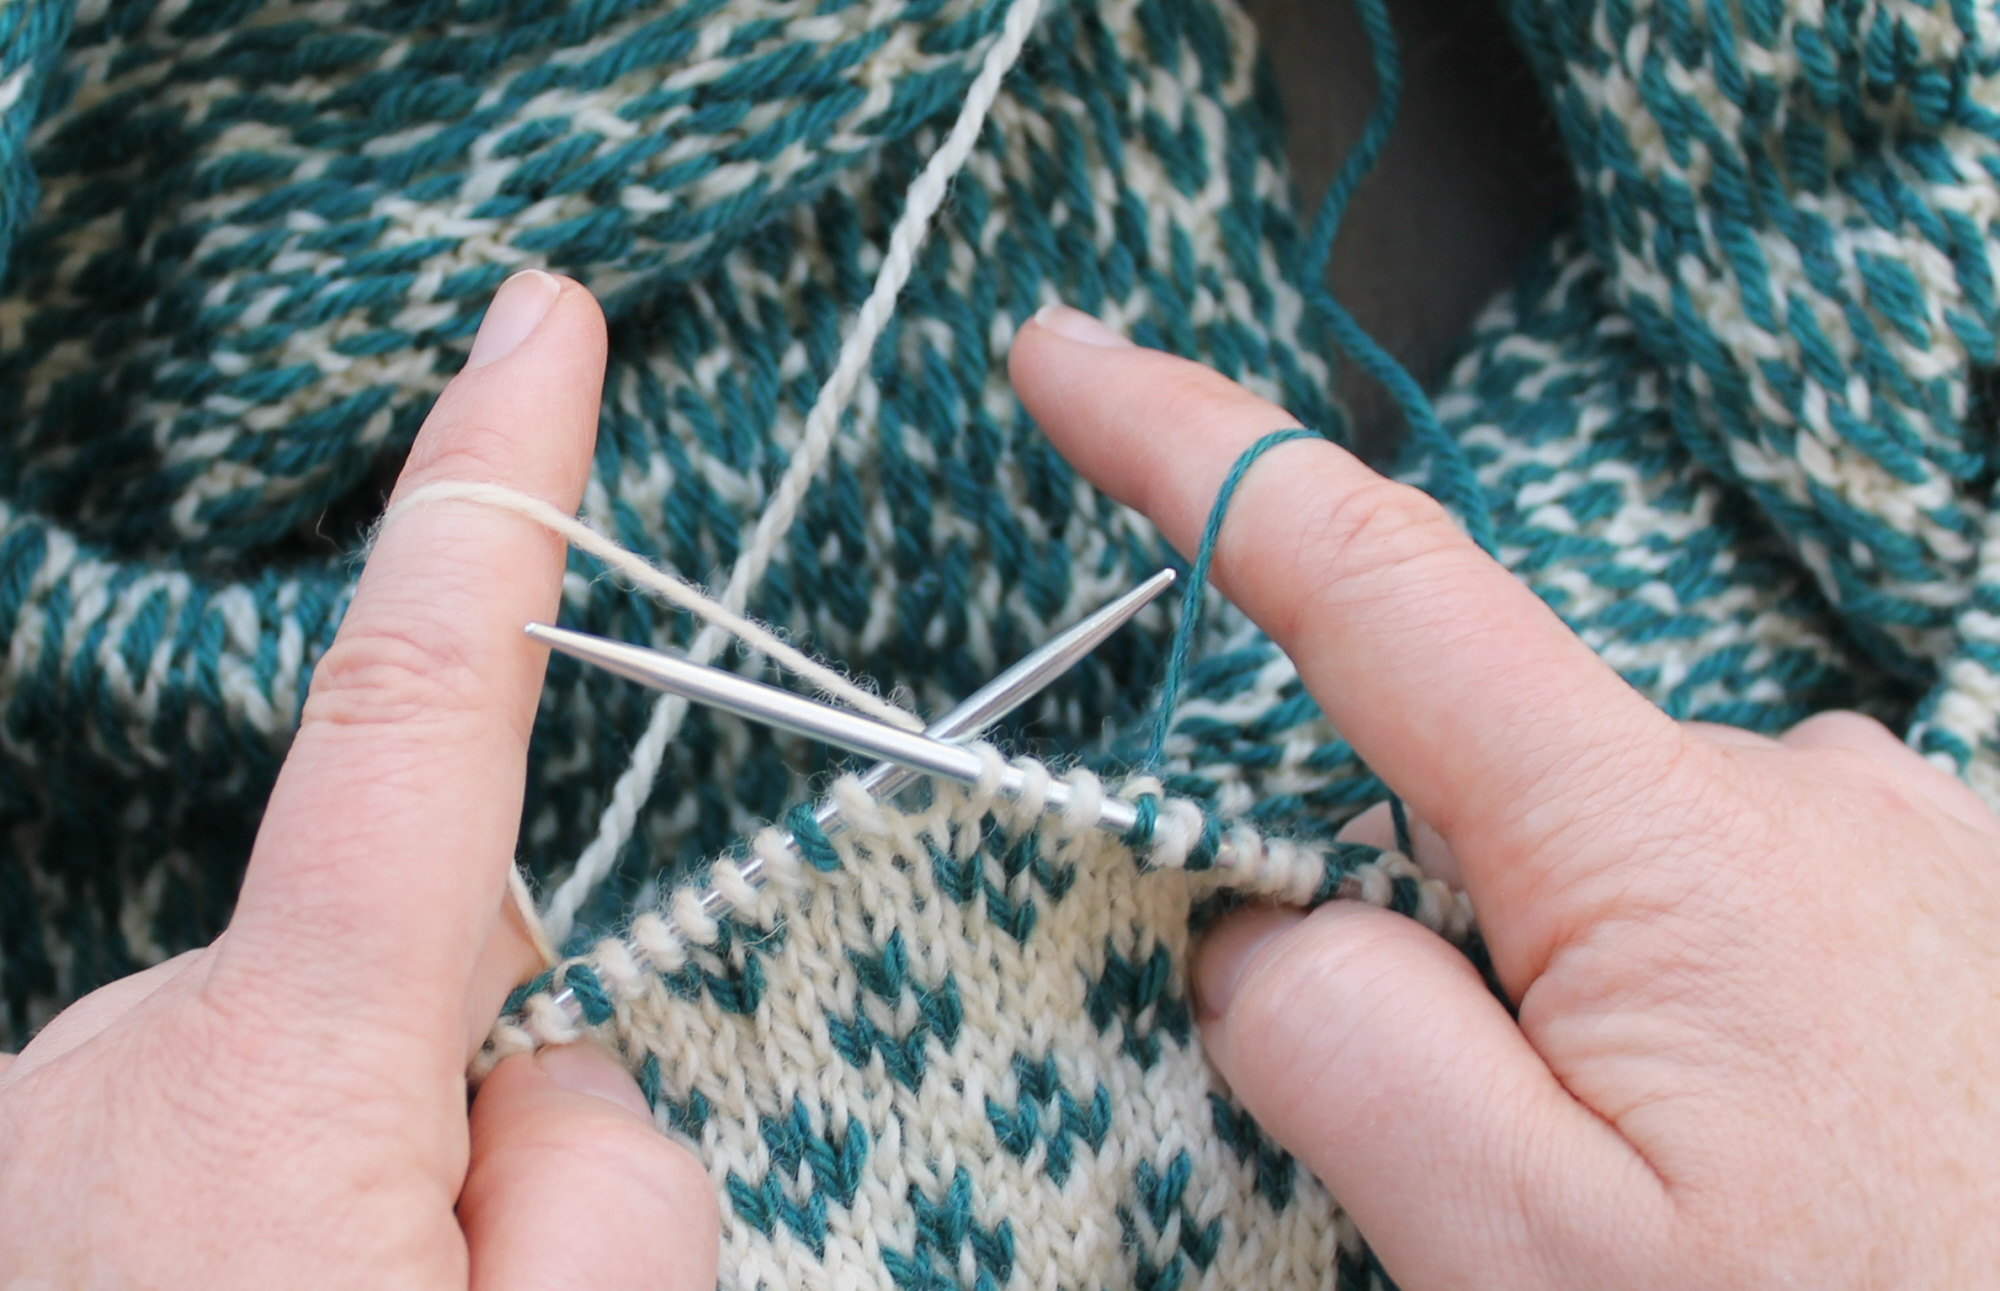 Holding stranded yarn with both hands